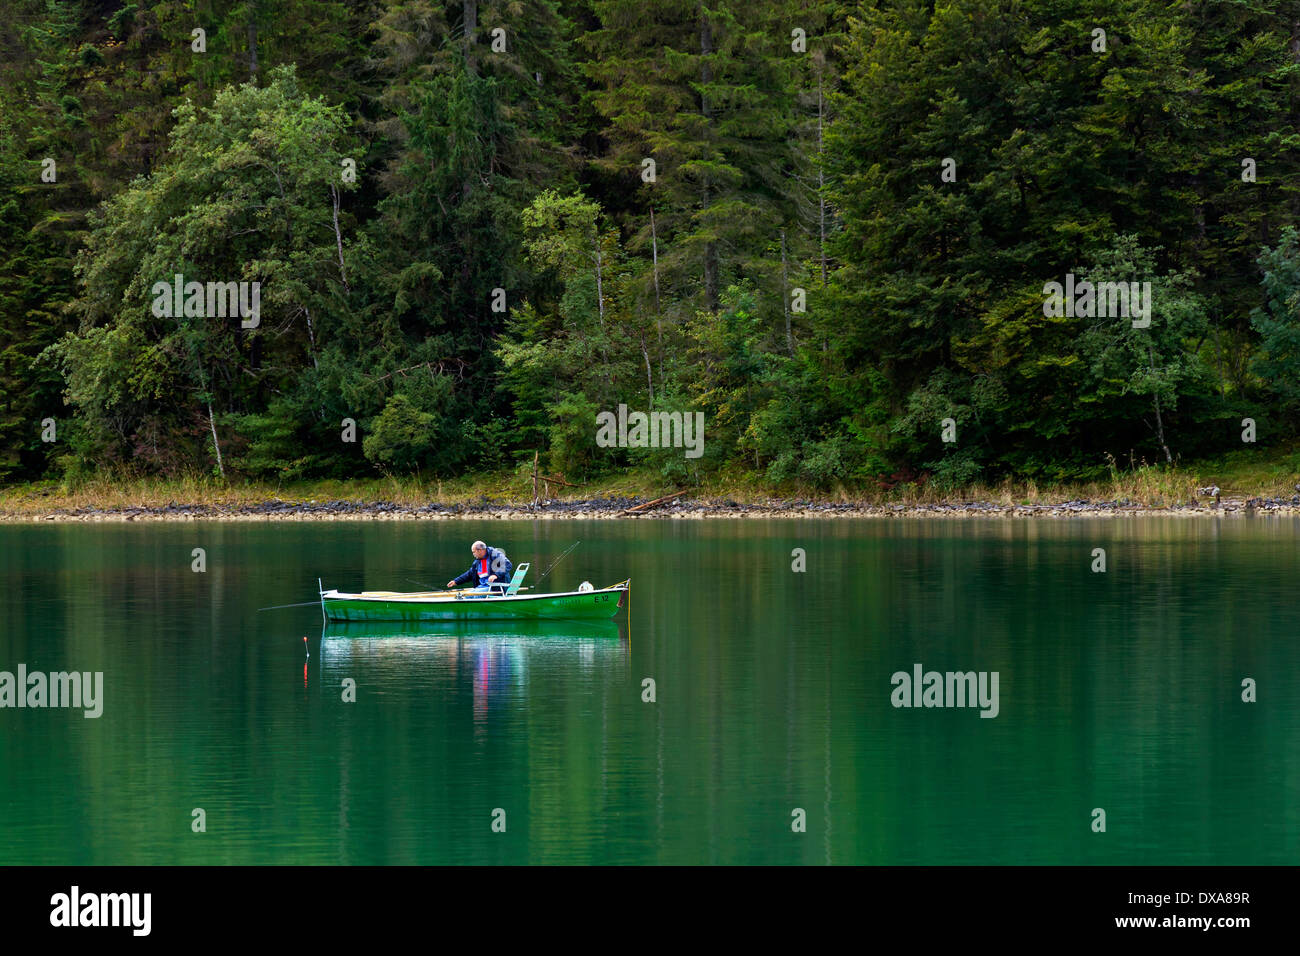 Angler fishing from rowing boat on the Walchensee / Lake Walchen, Upper Bavaria, Germany - Stock Image